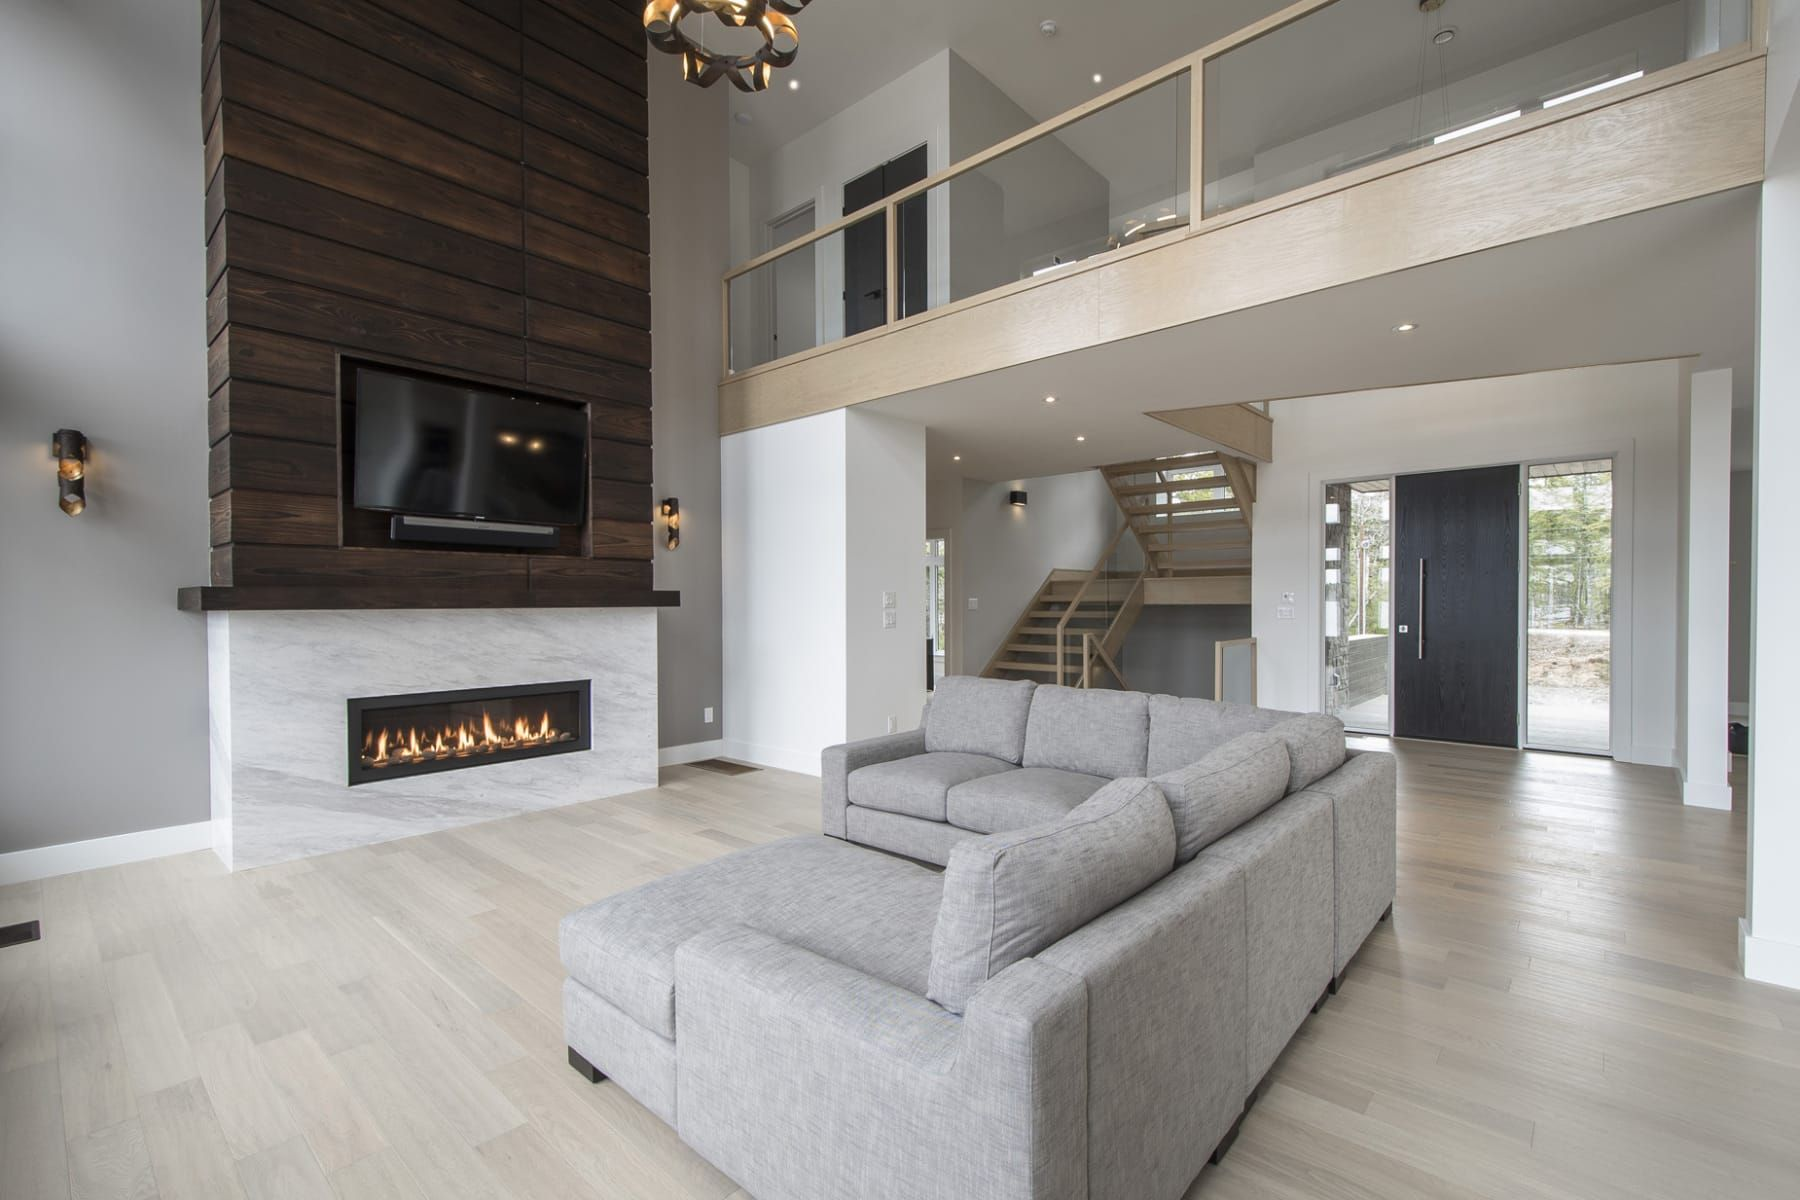 Rise Bridge Over Water Living Room Fireplace Makeover Fireplace Decor Firepla Furniture Design Living Room Open Concept Living Room Living Room Colors #open #entryway #living #room